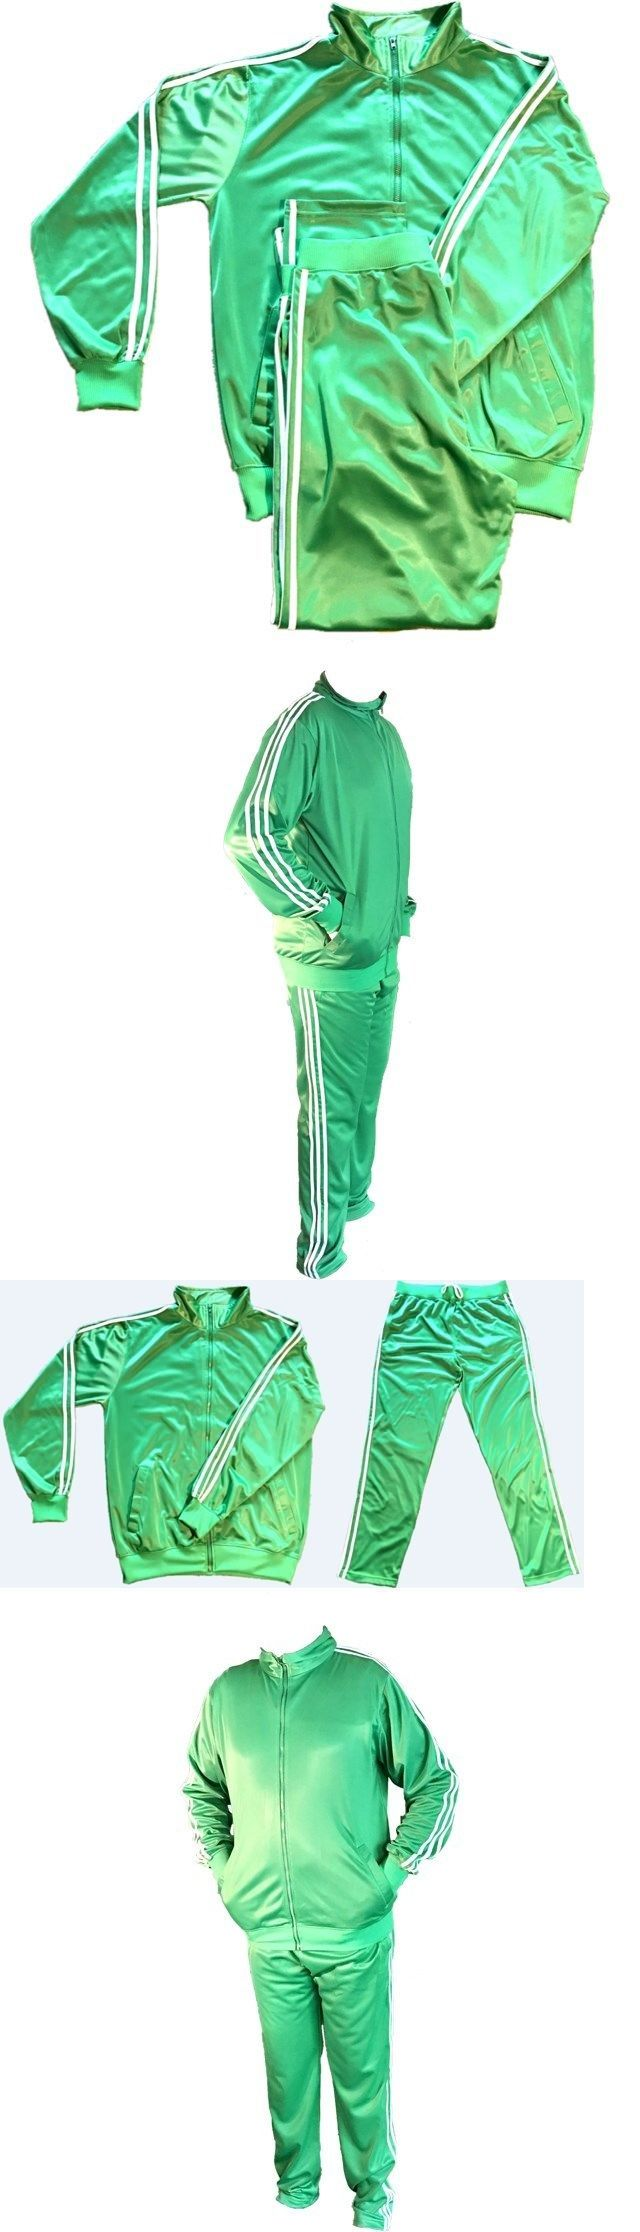 Track Suits 59339: 3 Stripes Light Weight Trinda Full Tracksuit Jogging Suit- Size: Xl- Unisex -> BUY IT NOW ONLY: $36.99 on eBay!